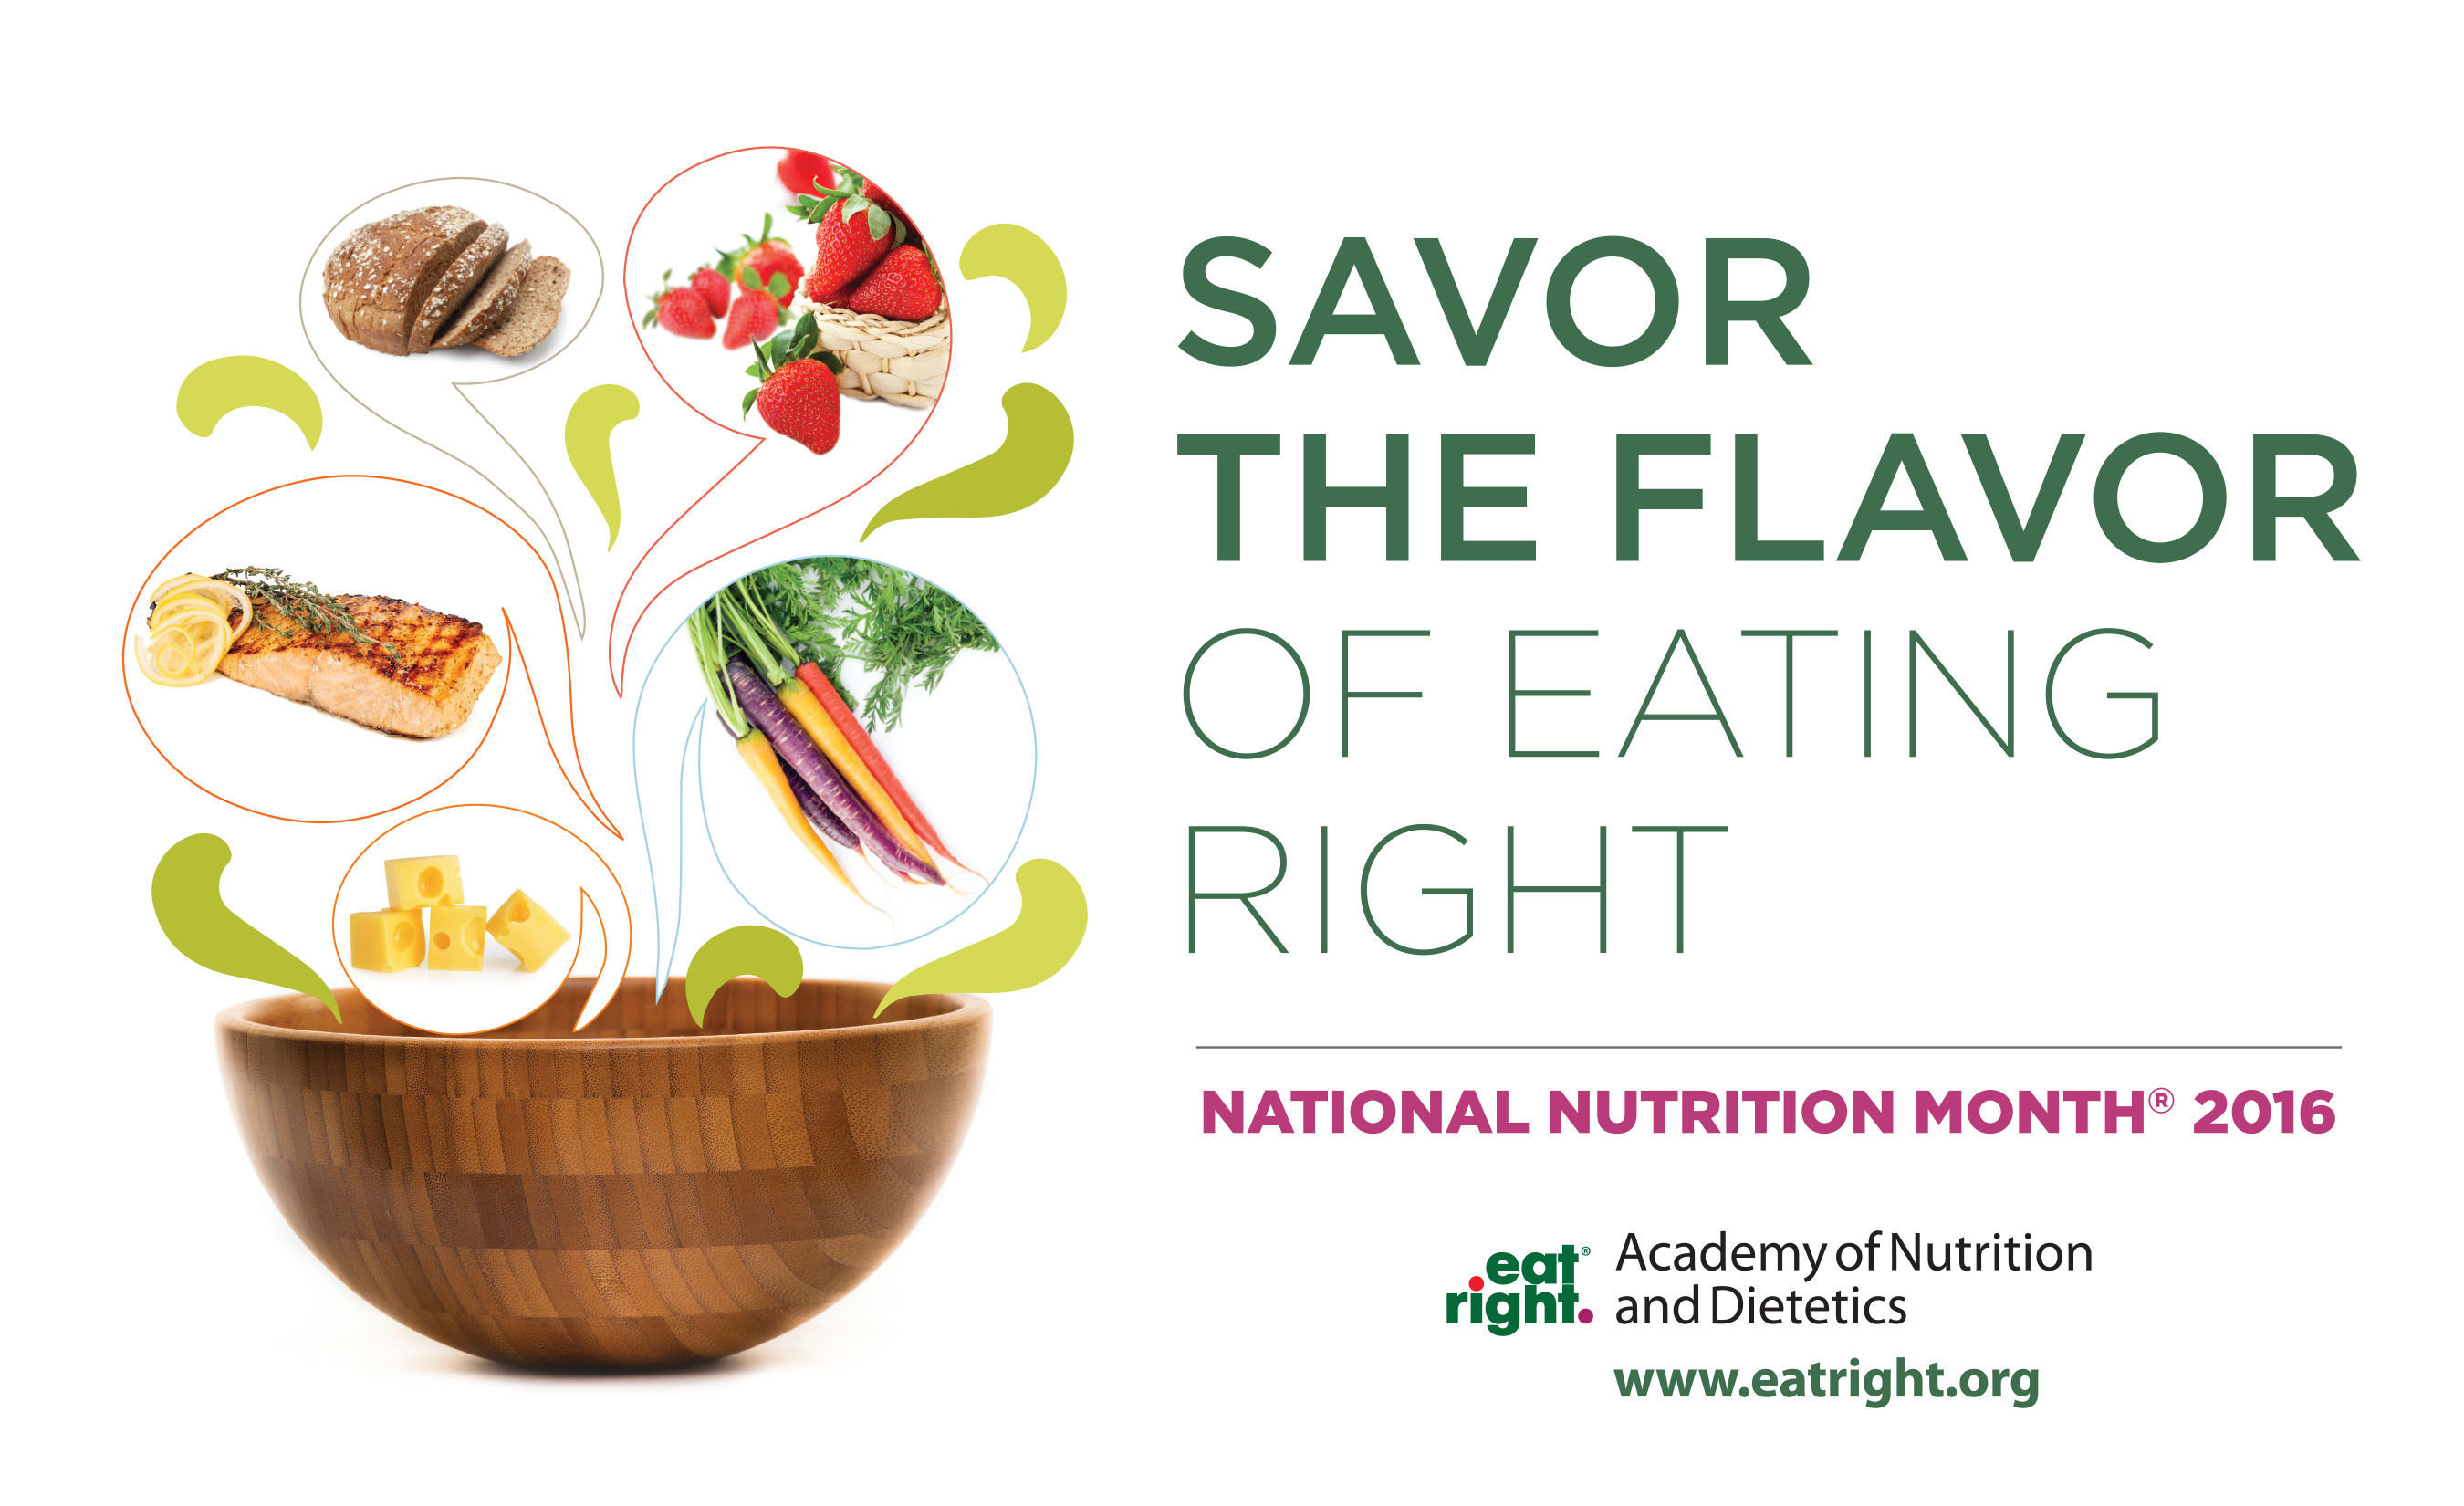 For National Nutrition Month 2016 Academy Of Nutrition And